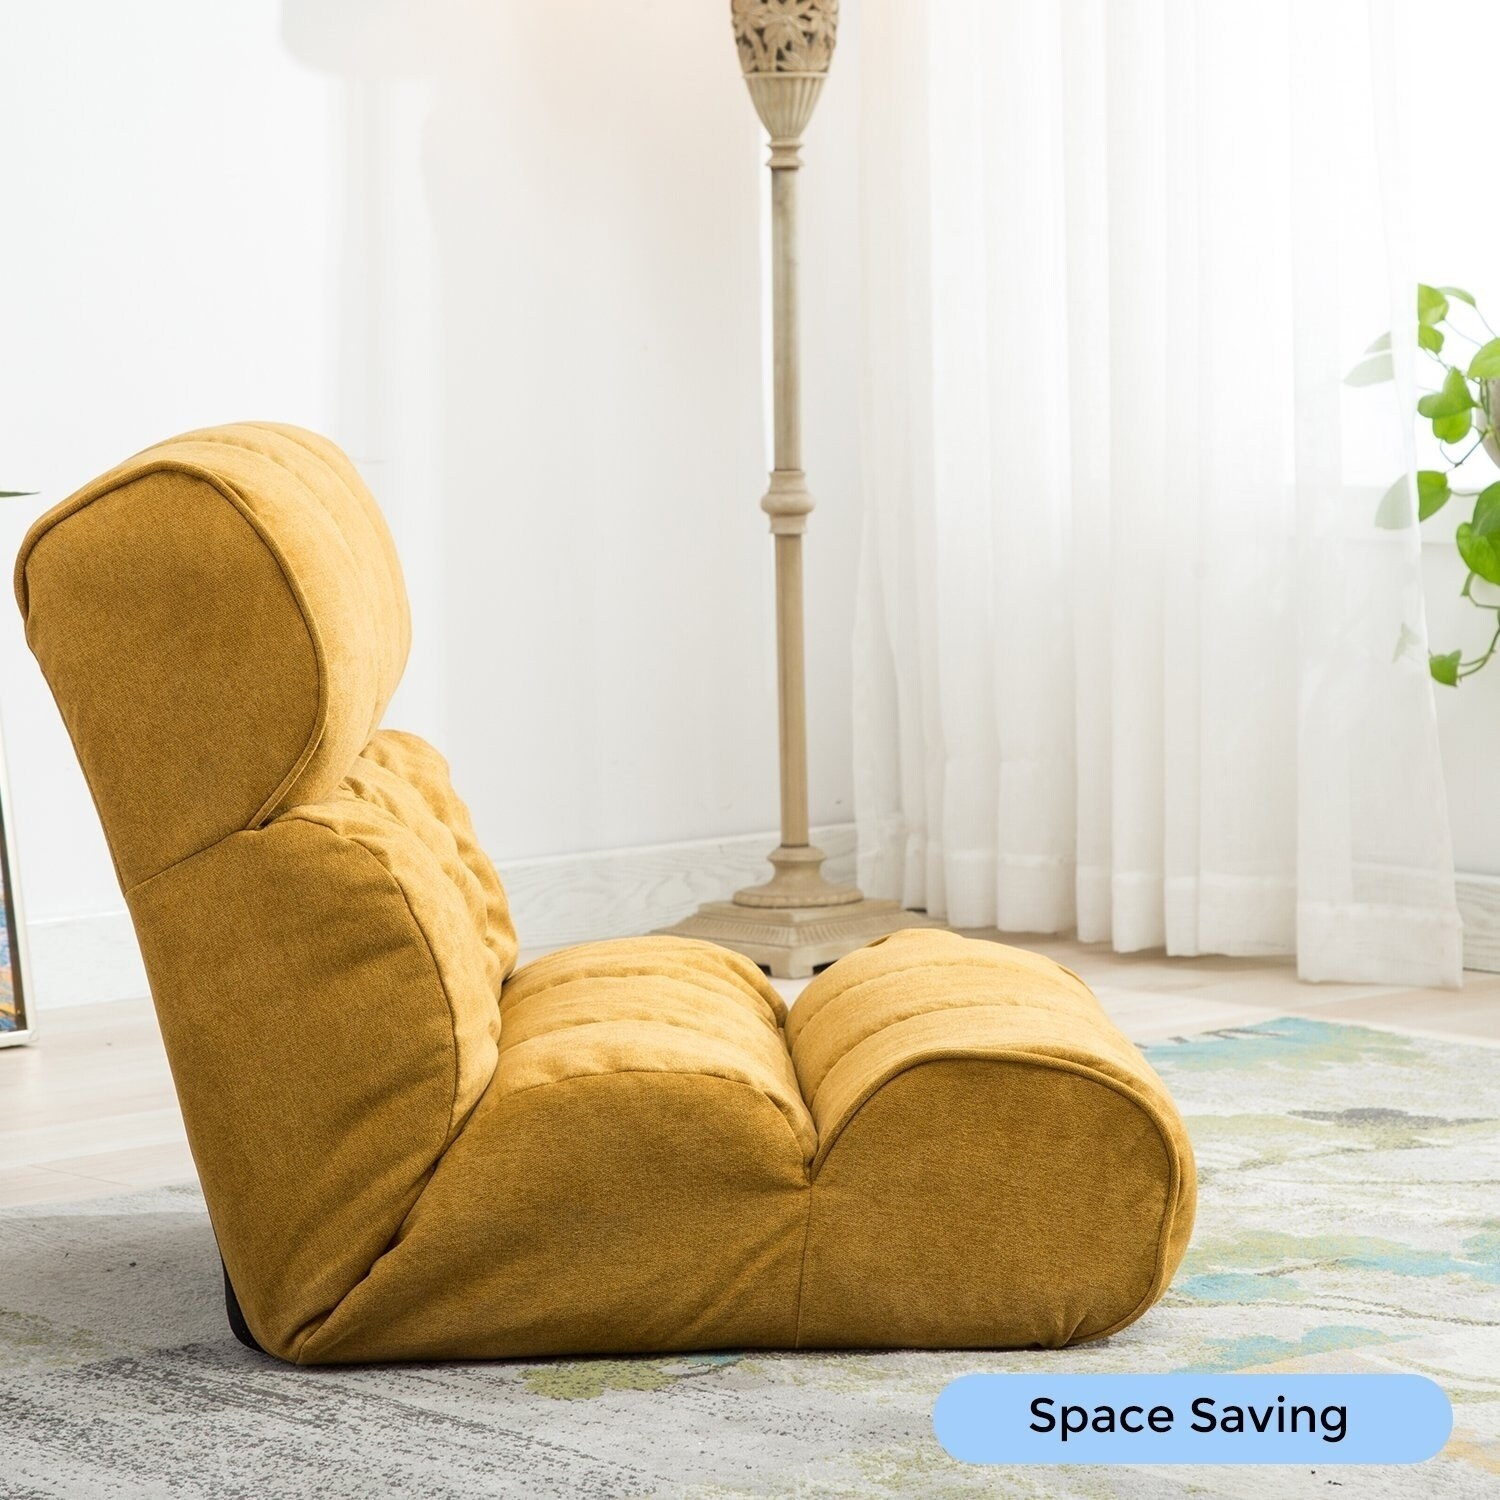 BONZY Floor Chair Folding Lazy Sofa U0026 Adjustable Gaming Chair With Memory  Foam Oversized Weight Capacity 300 Lbs   Orange   Free Shipping Today    Overstock ...